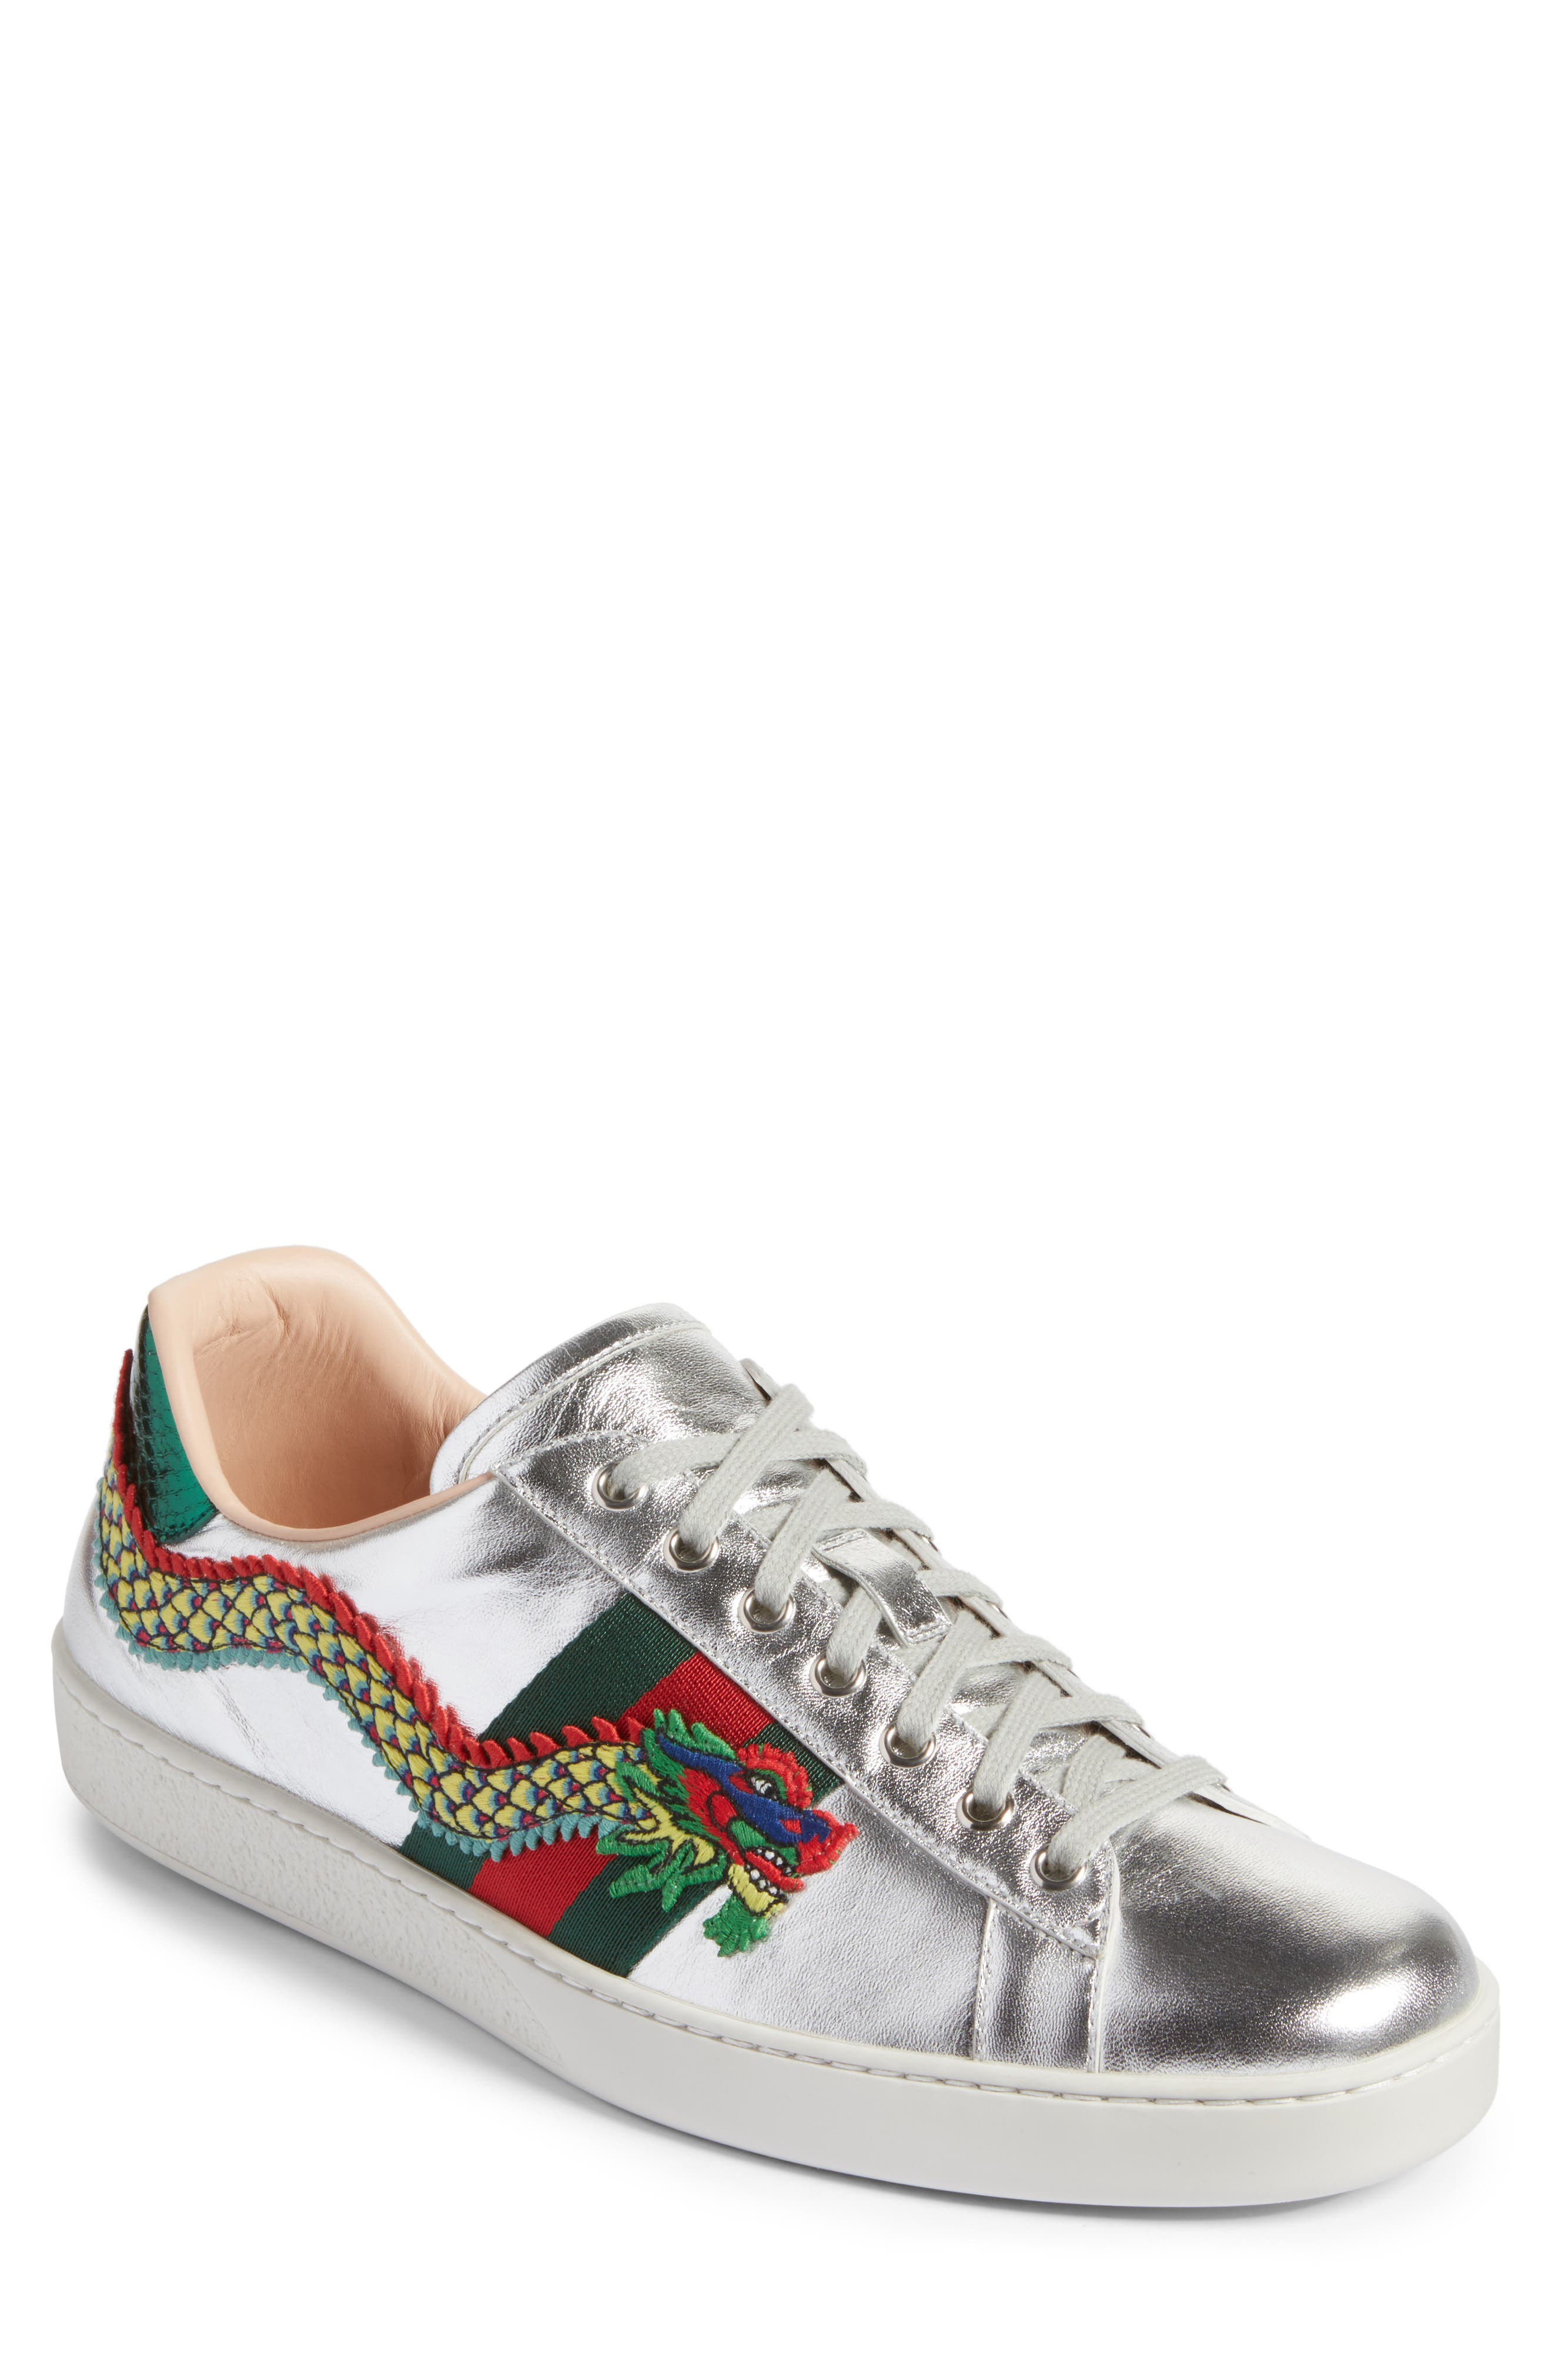 New Ace Dragon Sneaker,                         Main,                         color, 048